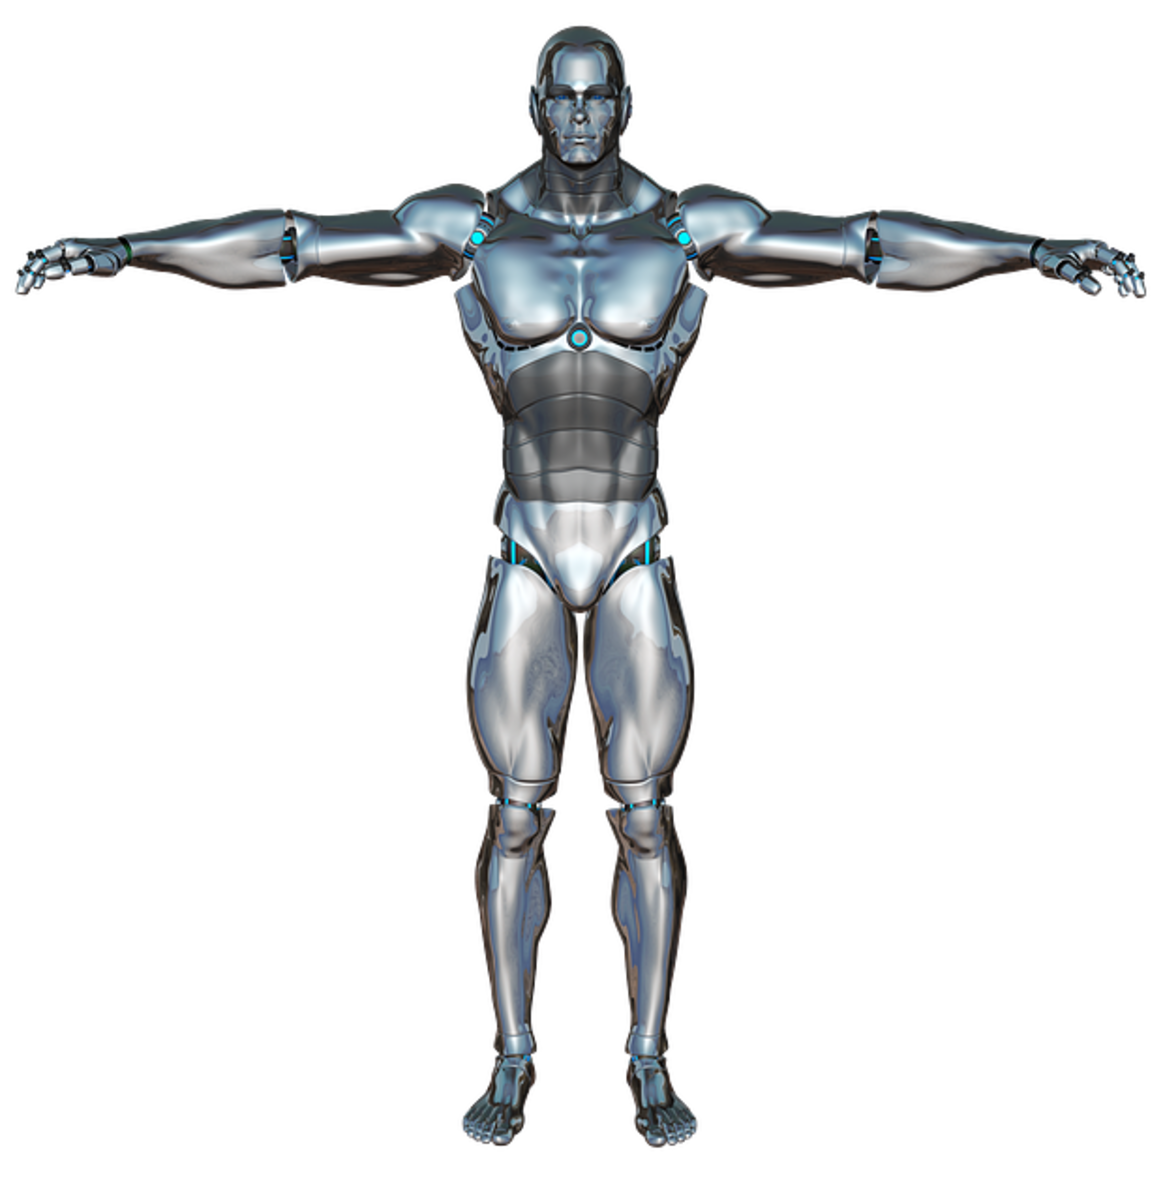 Transforming The Human Race Into Cyborg/Android Slaves Within The Next 100 Years